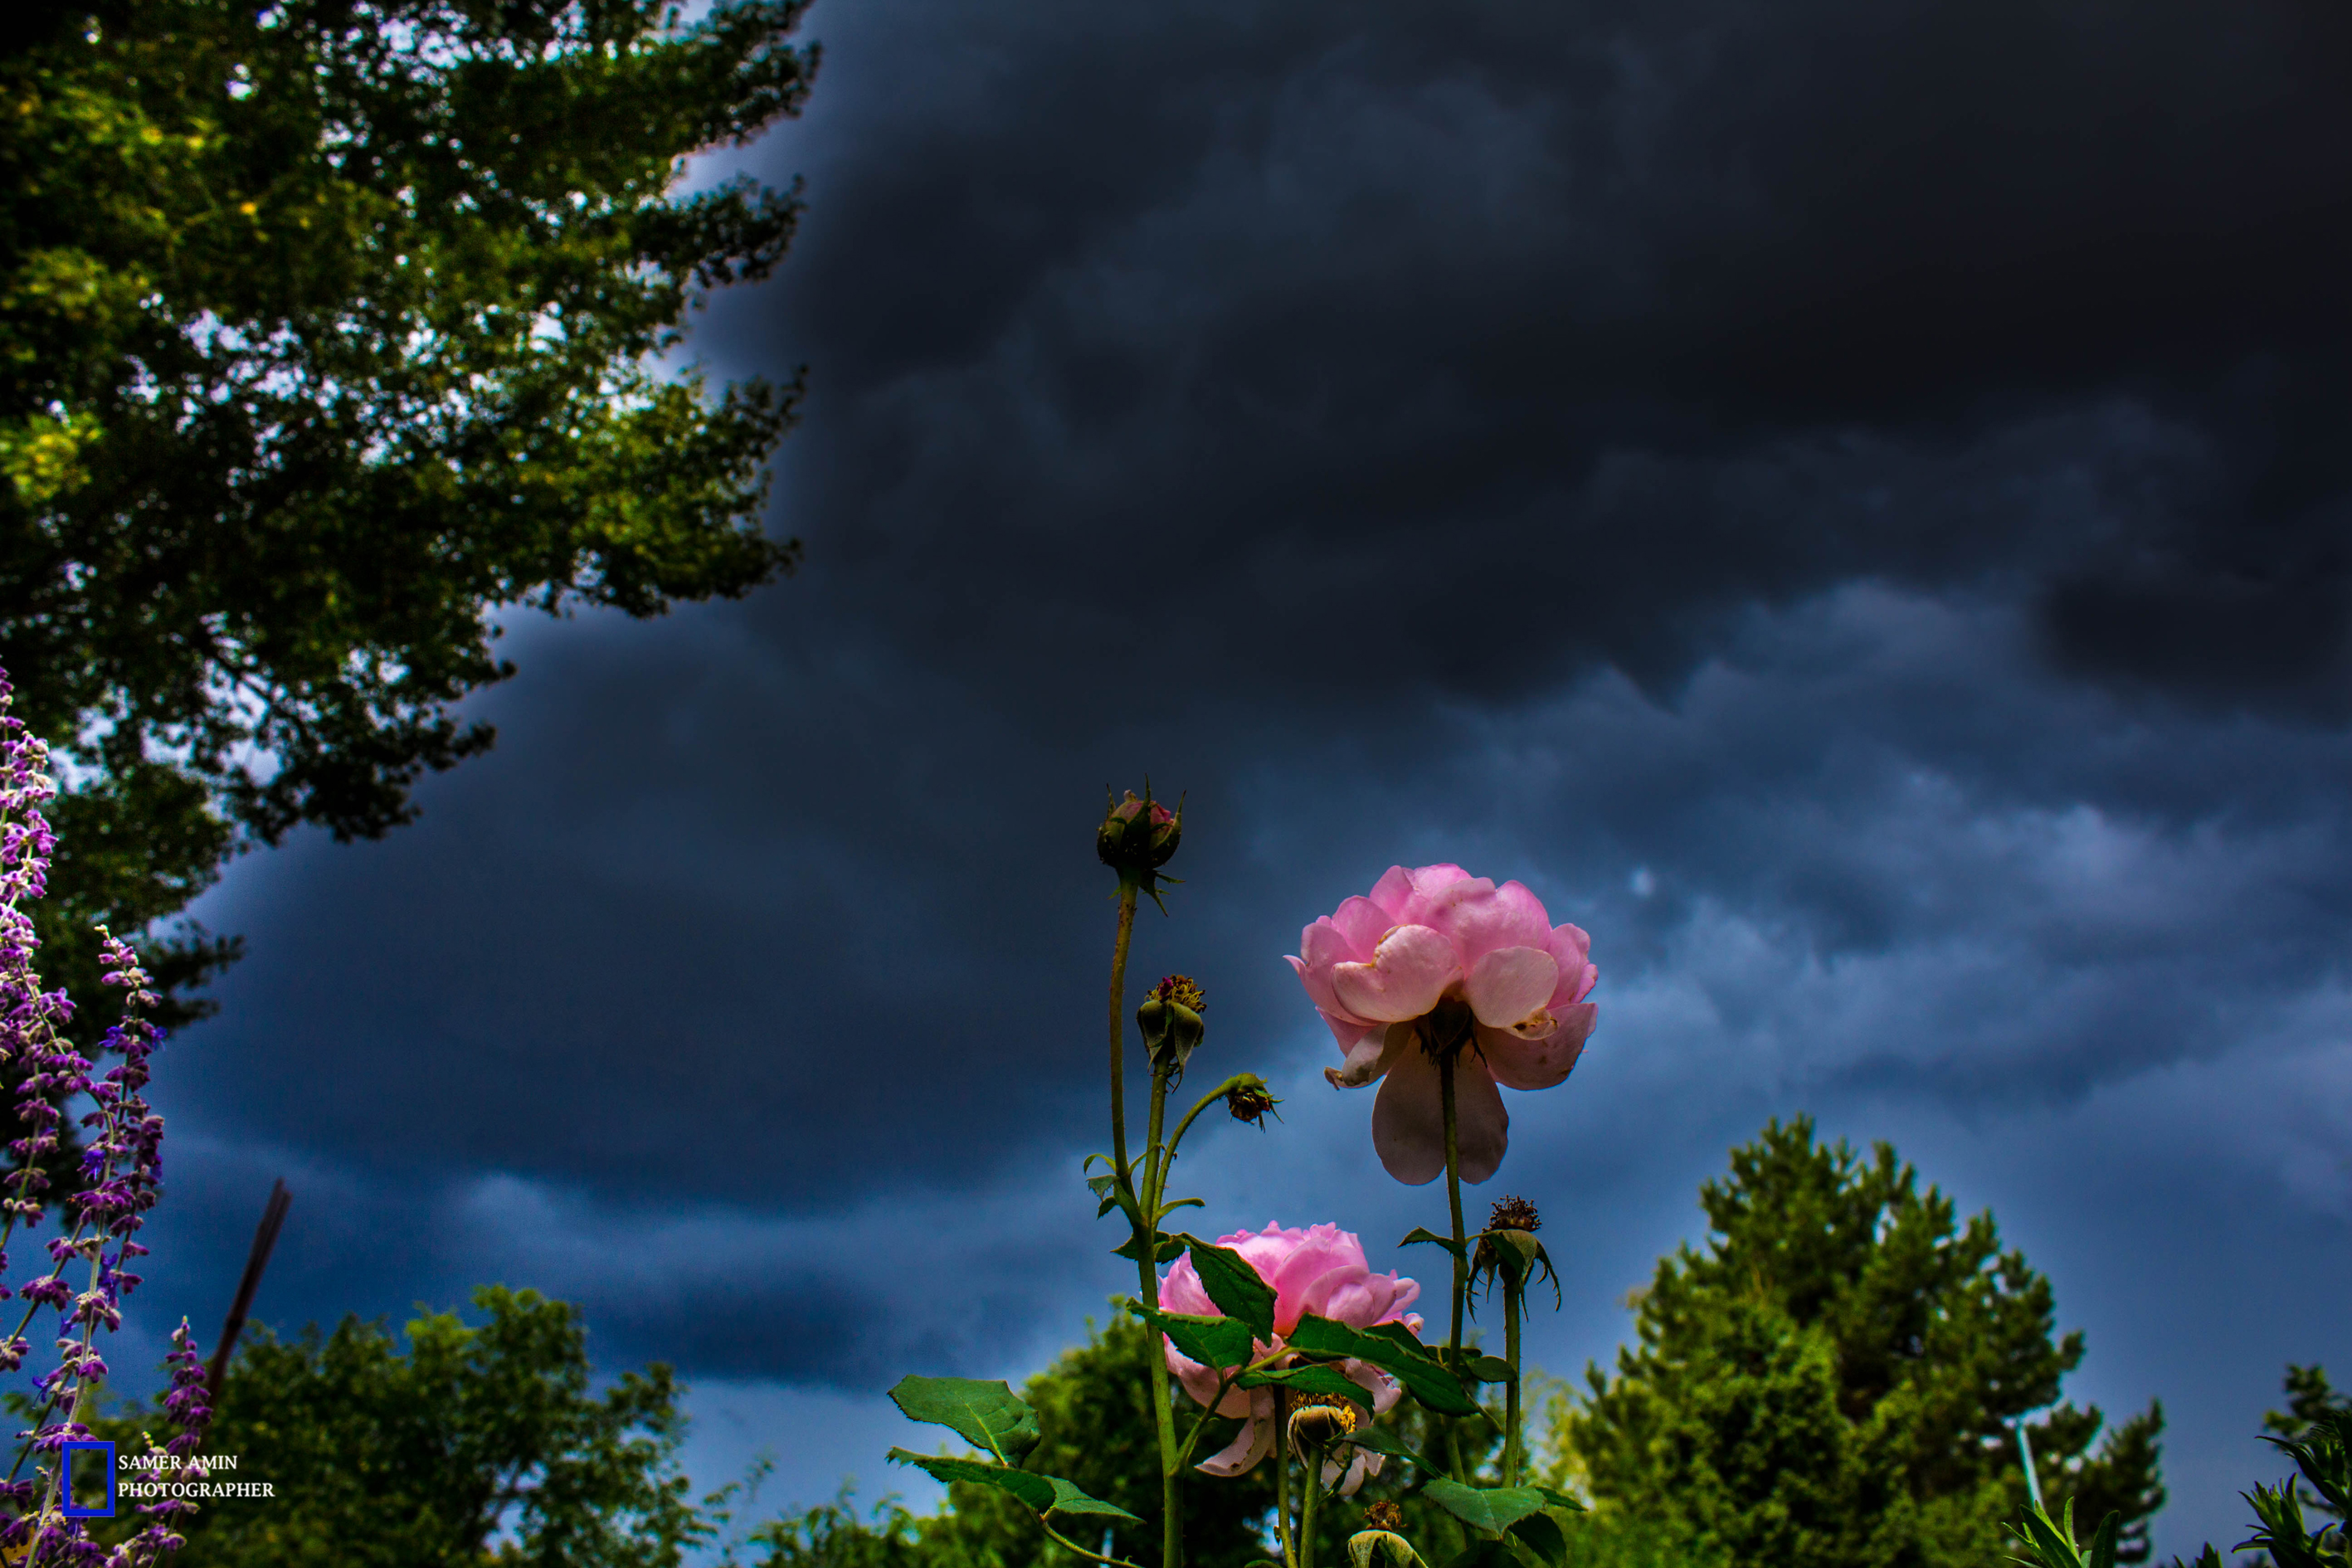 01_small rose under big storm